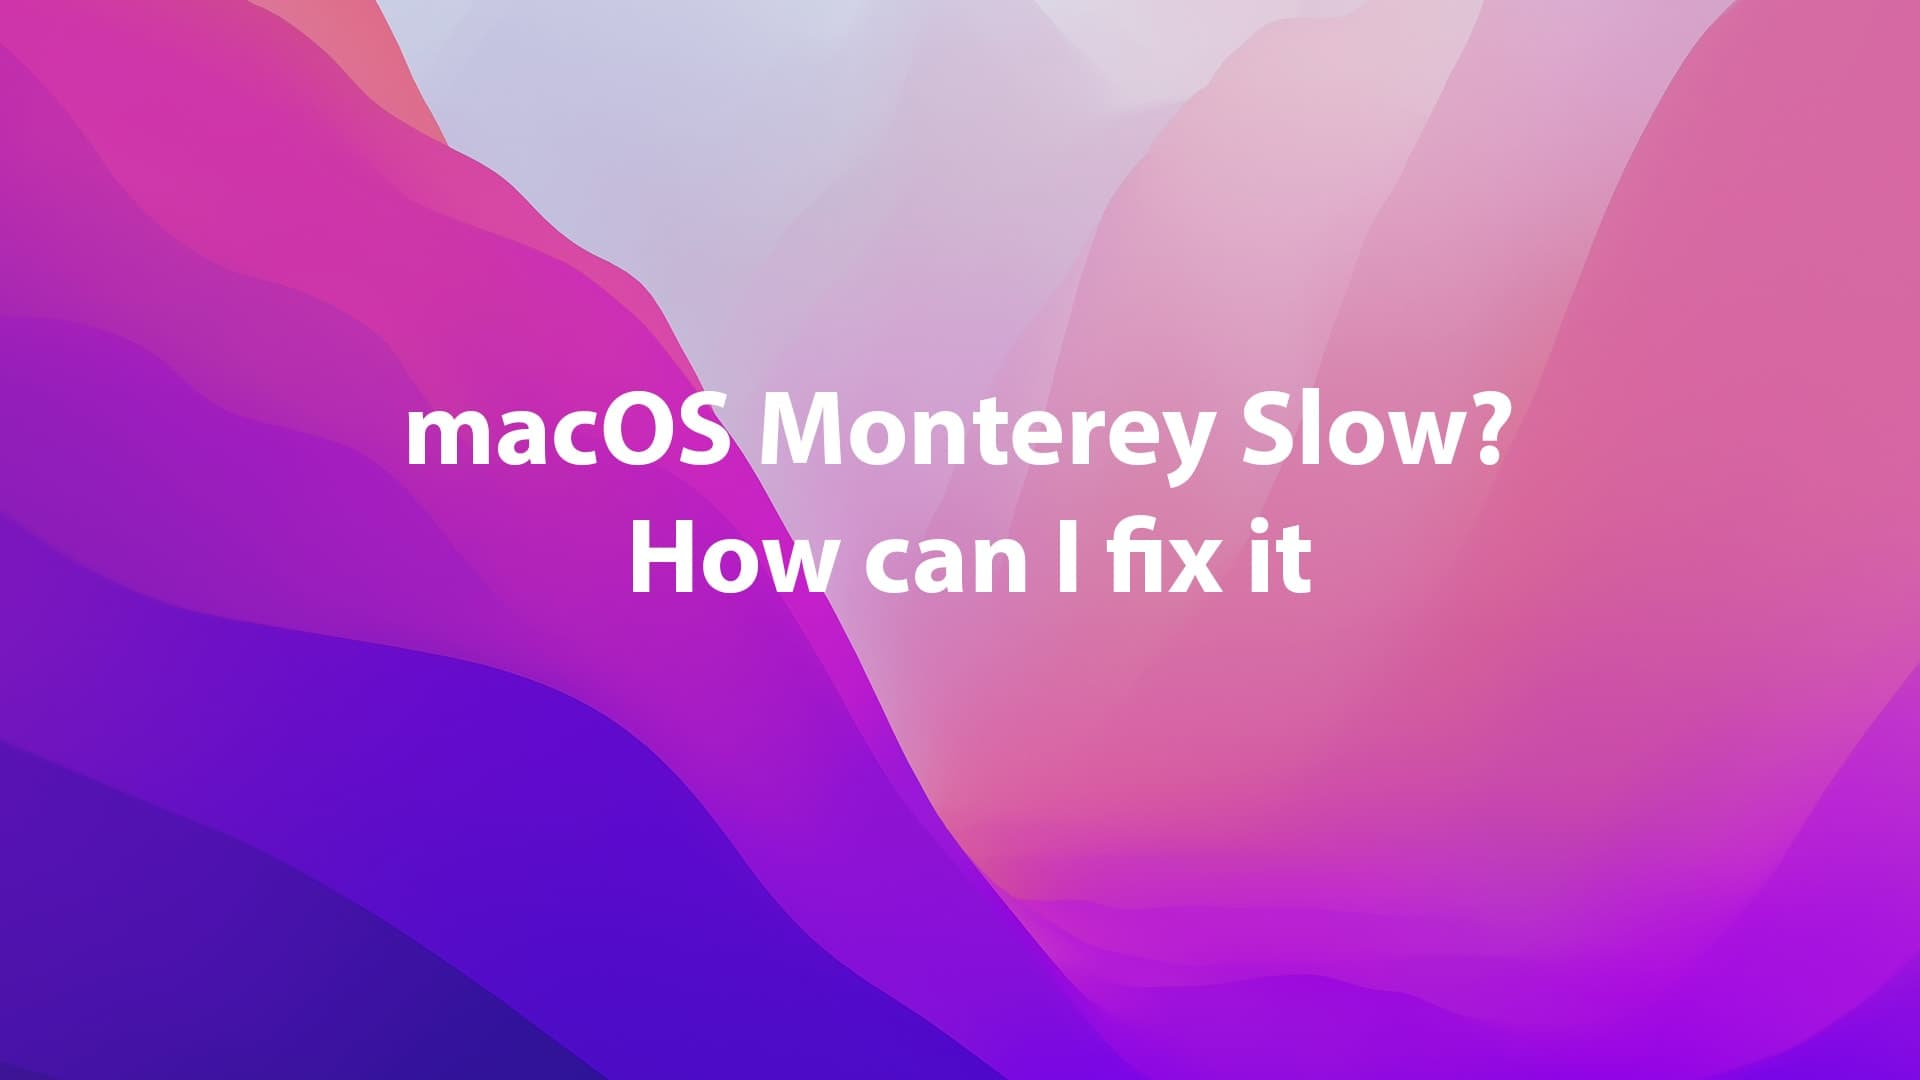 macOS Monterey Slow? How Can I Fix It